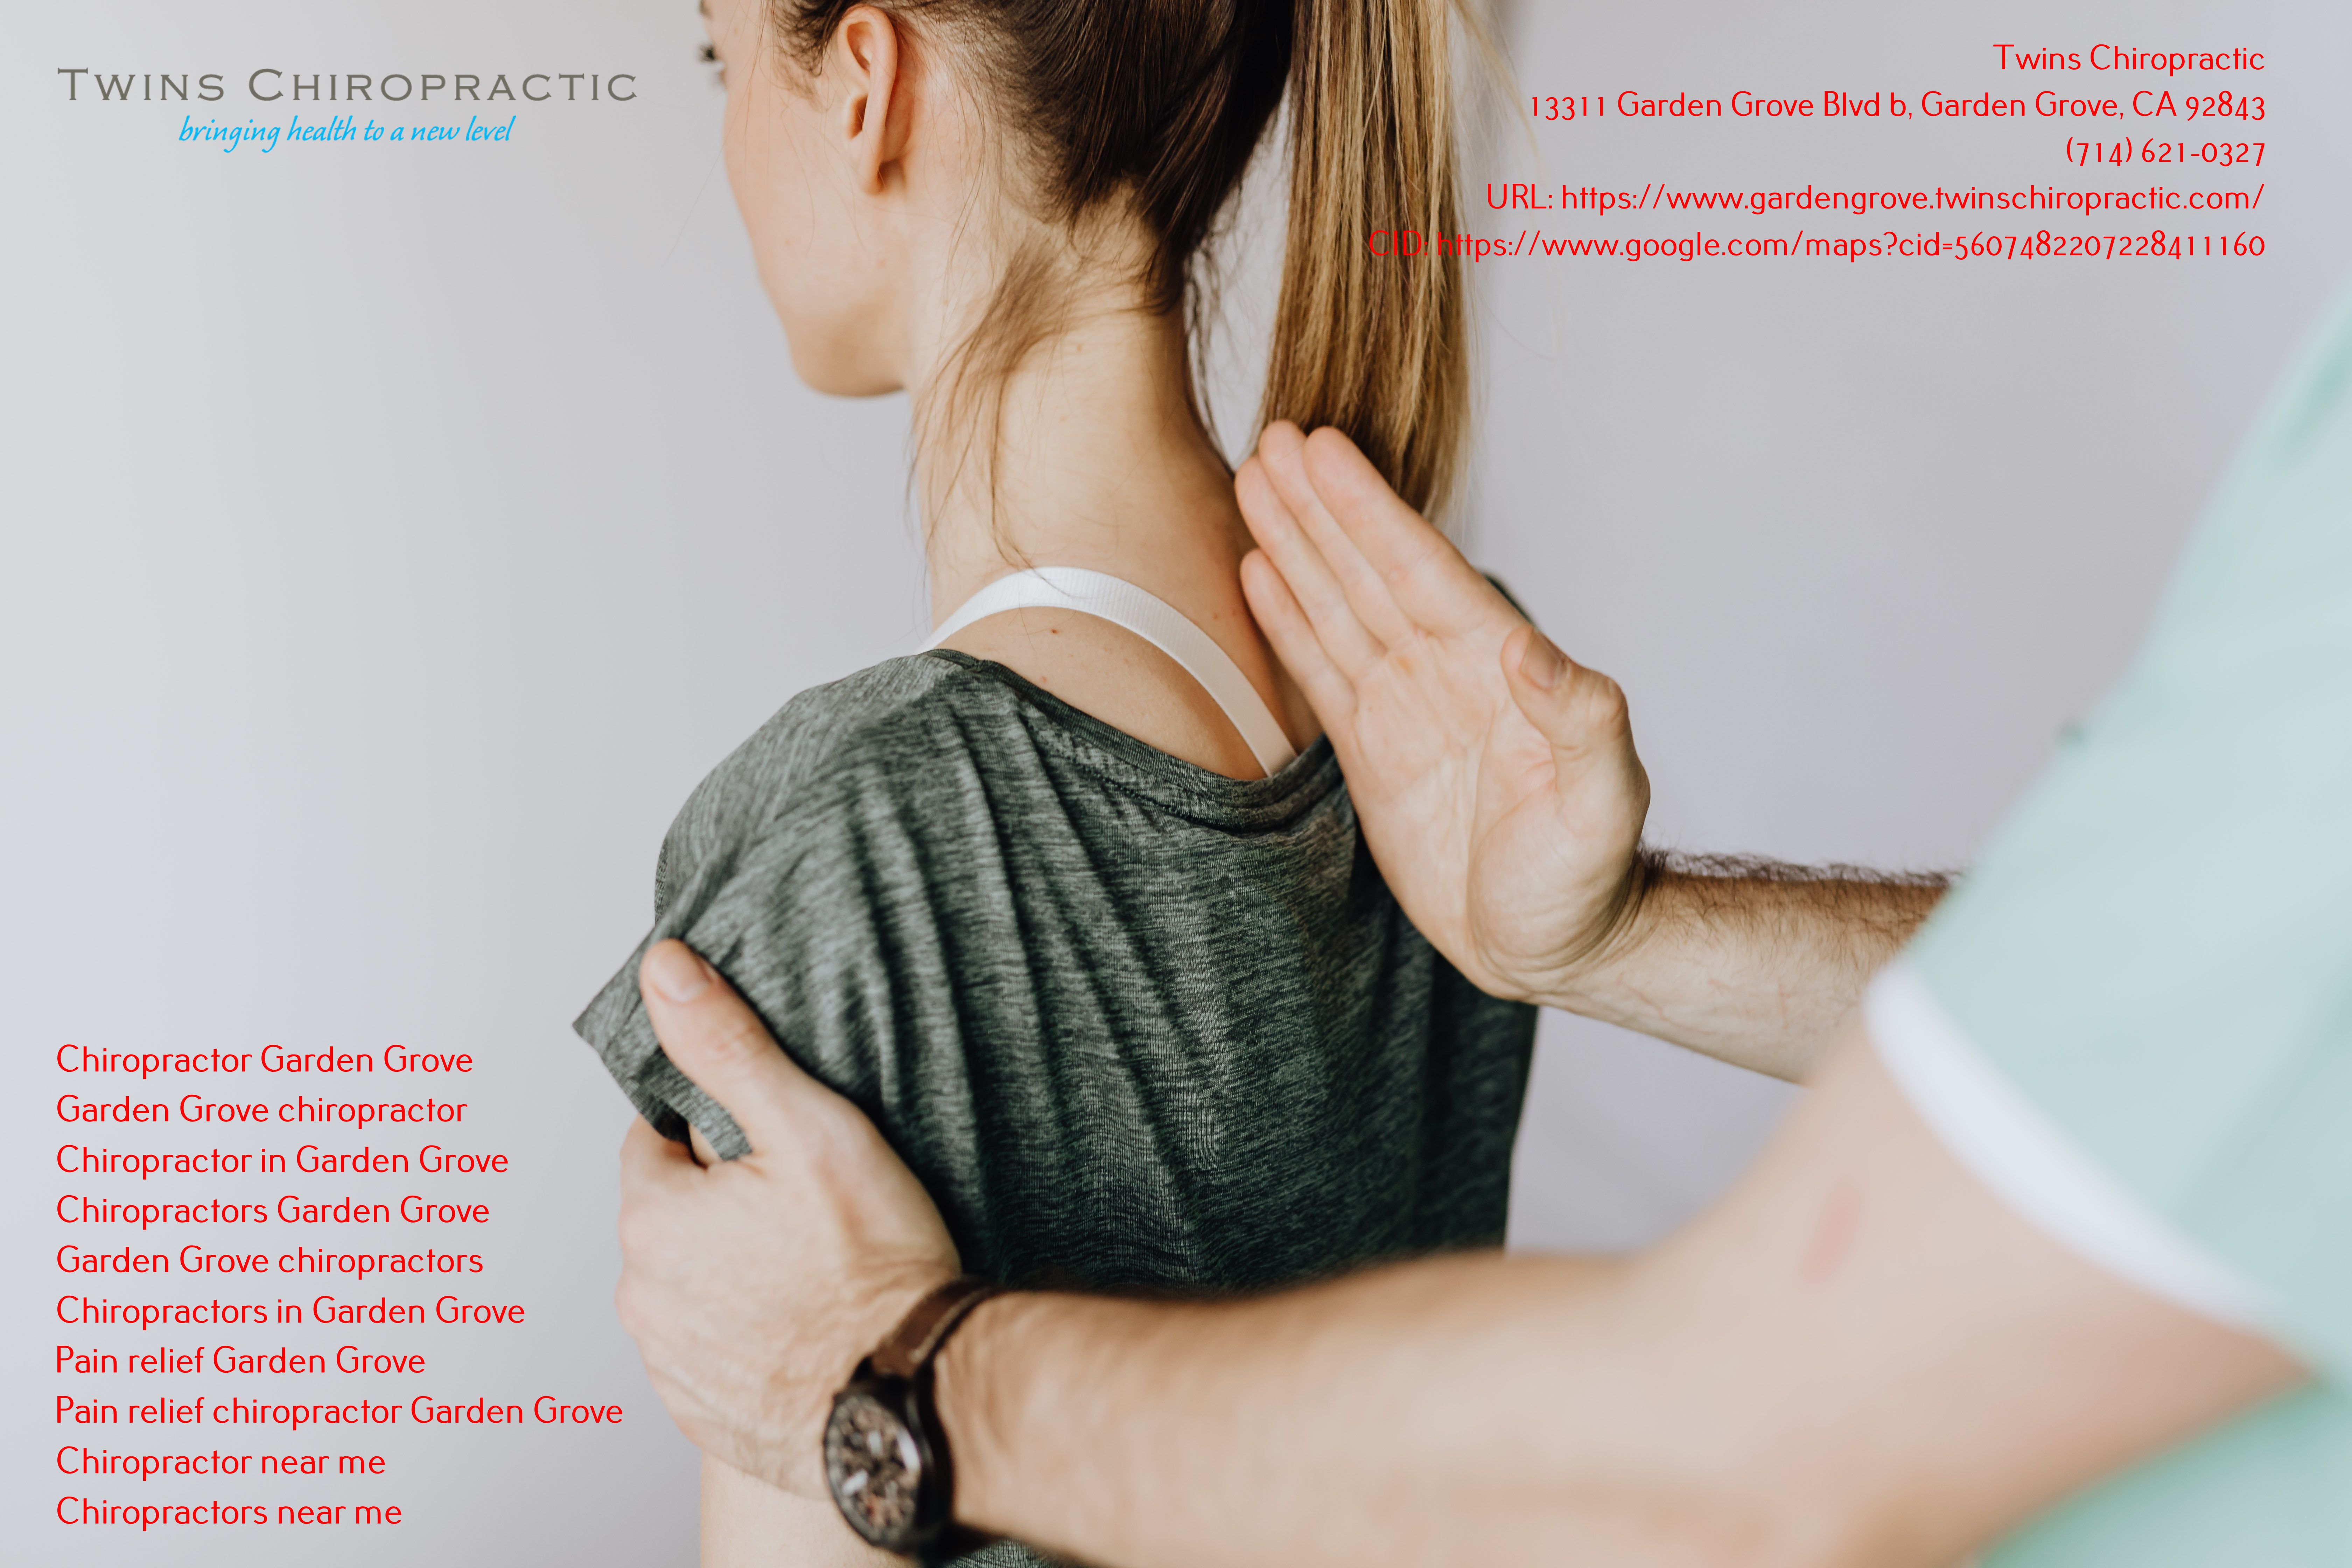 Twins Chiropractic (M2) - 6